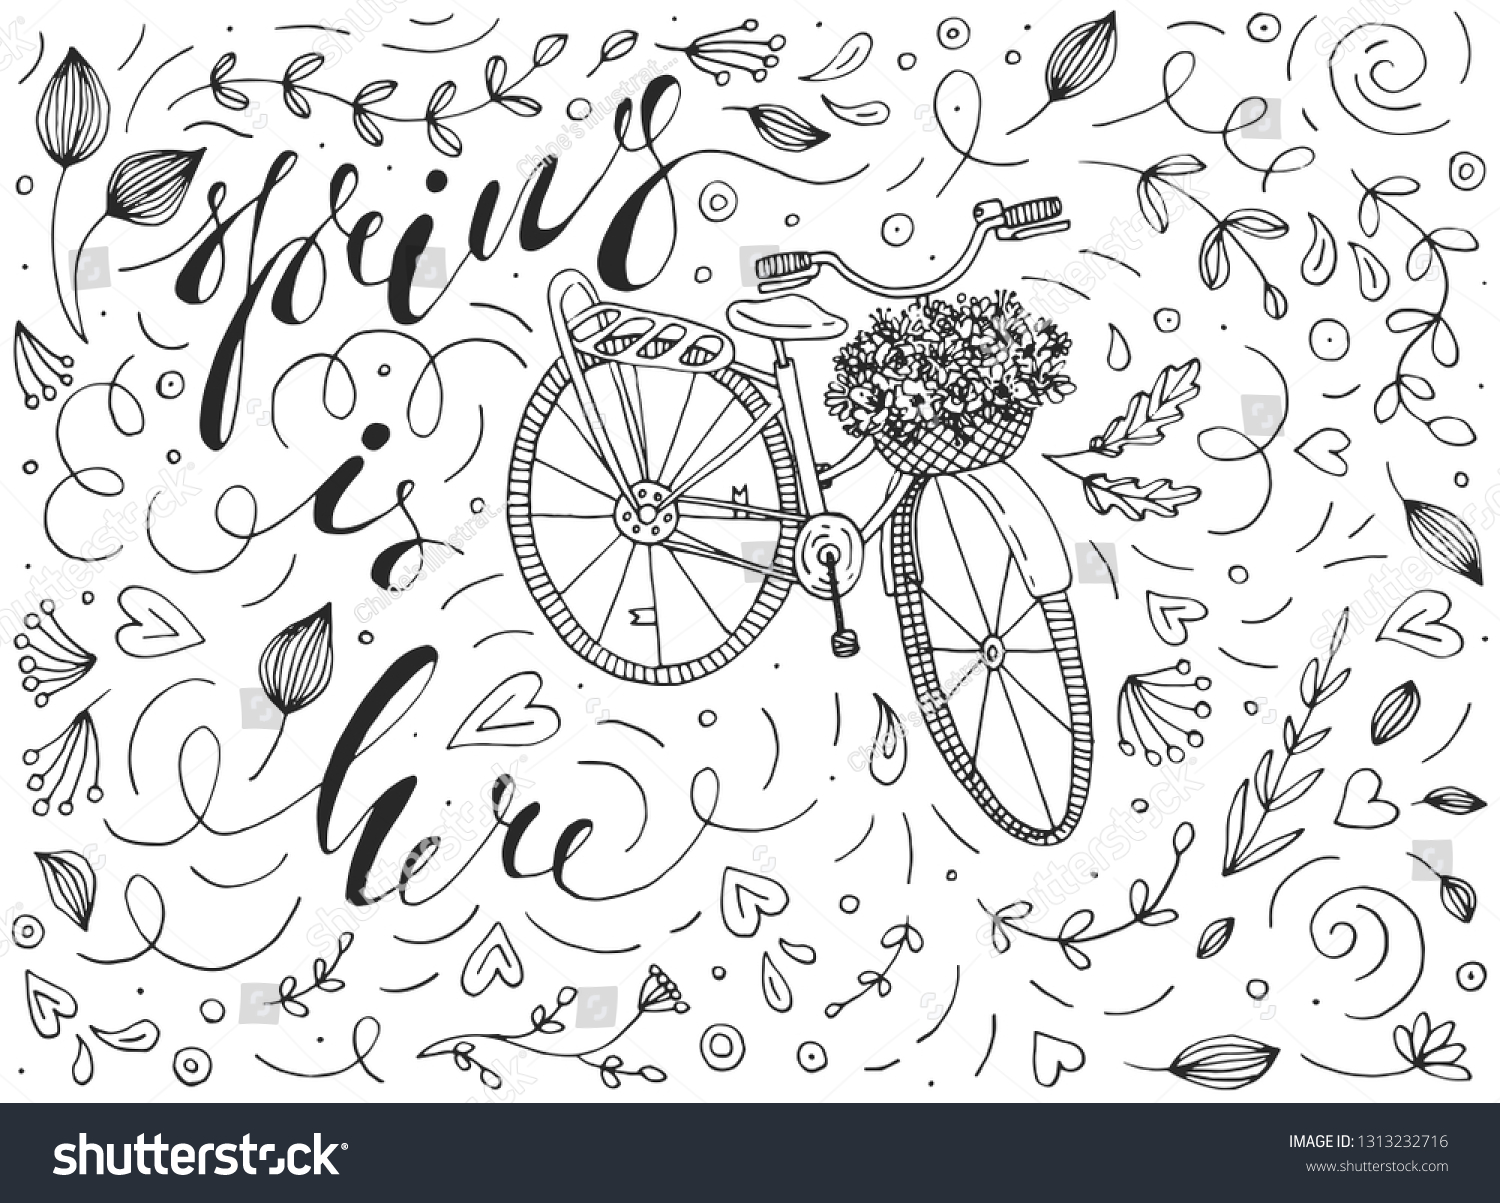 stock-vector-spring-is-here-vector-illus